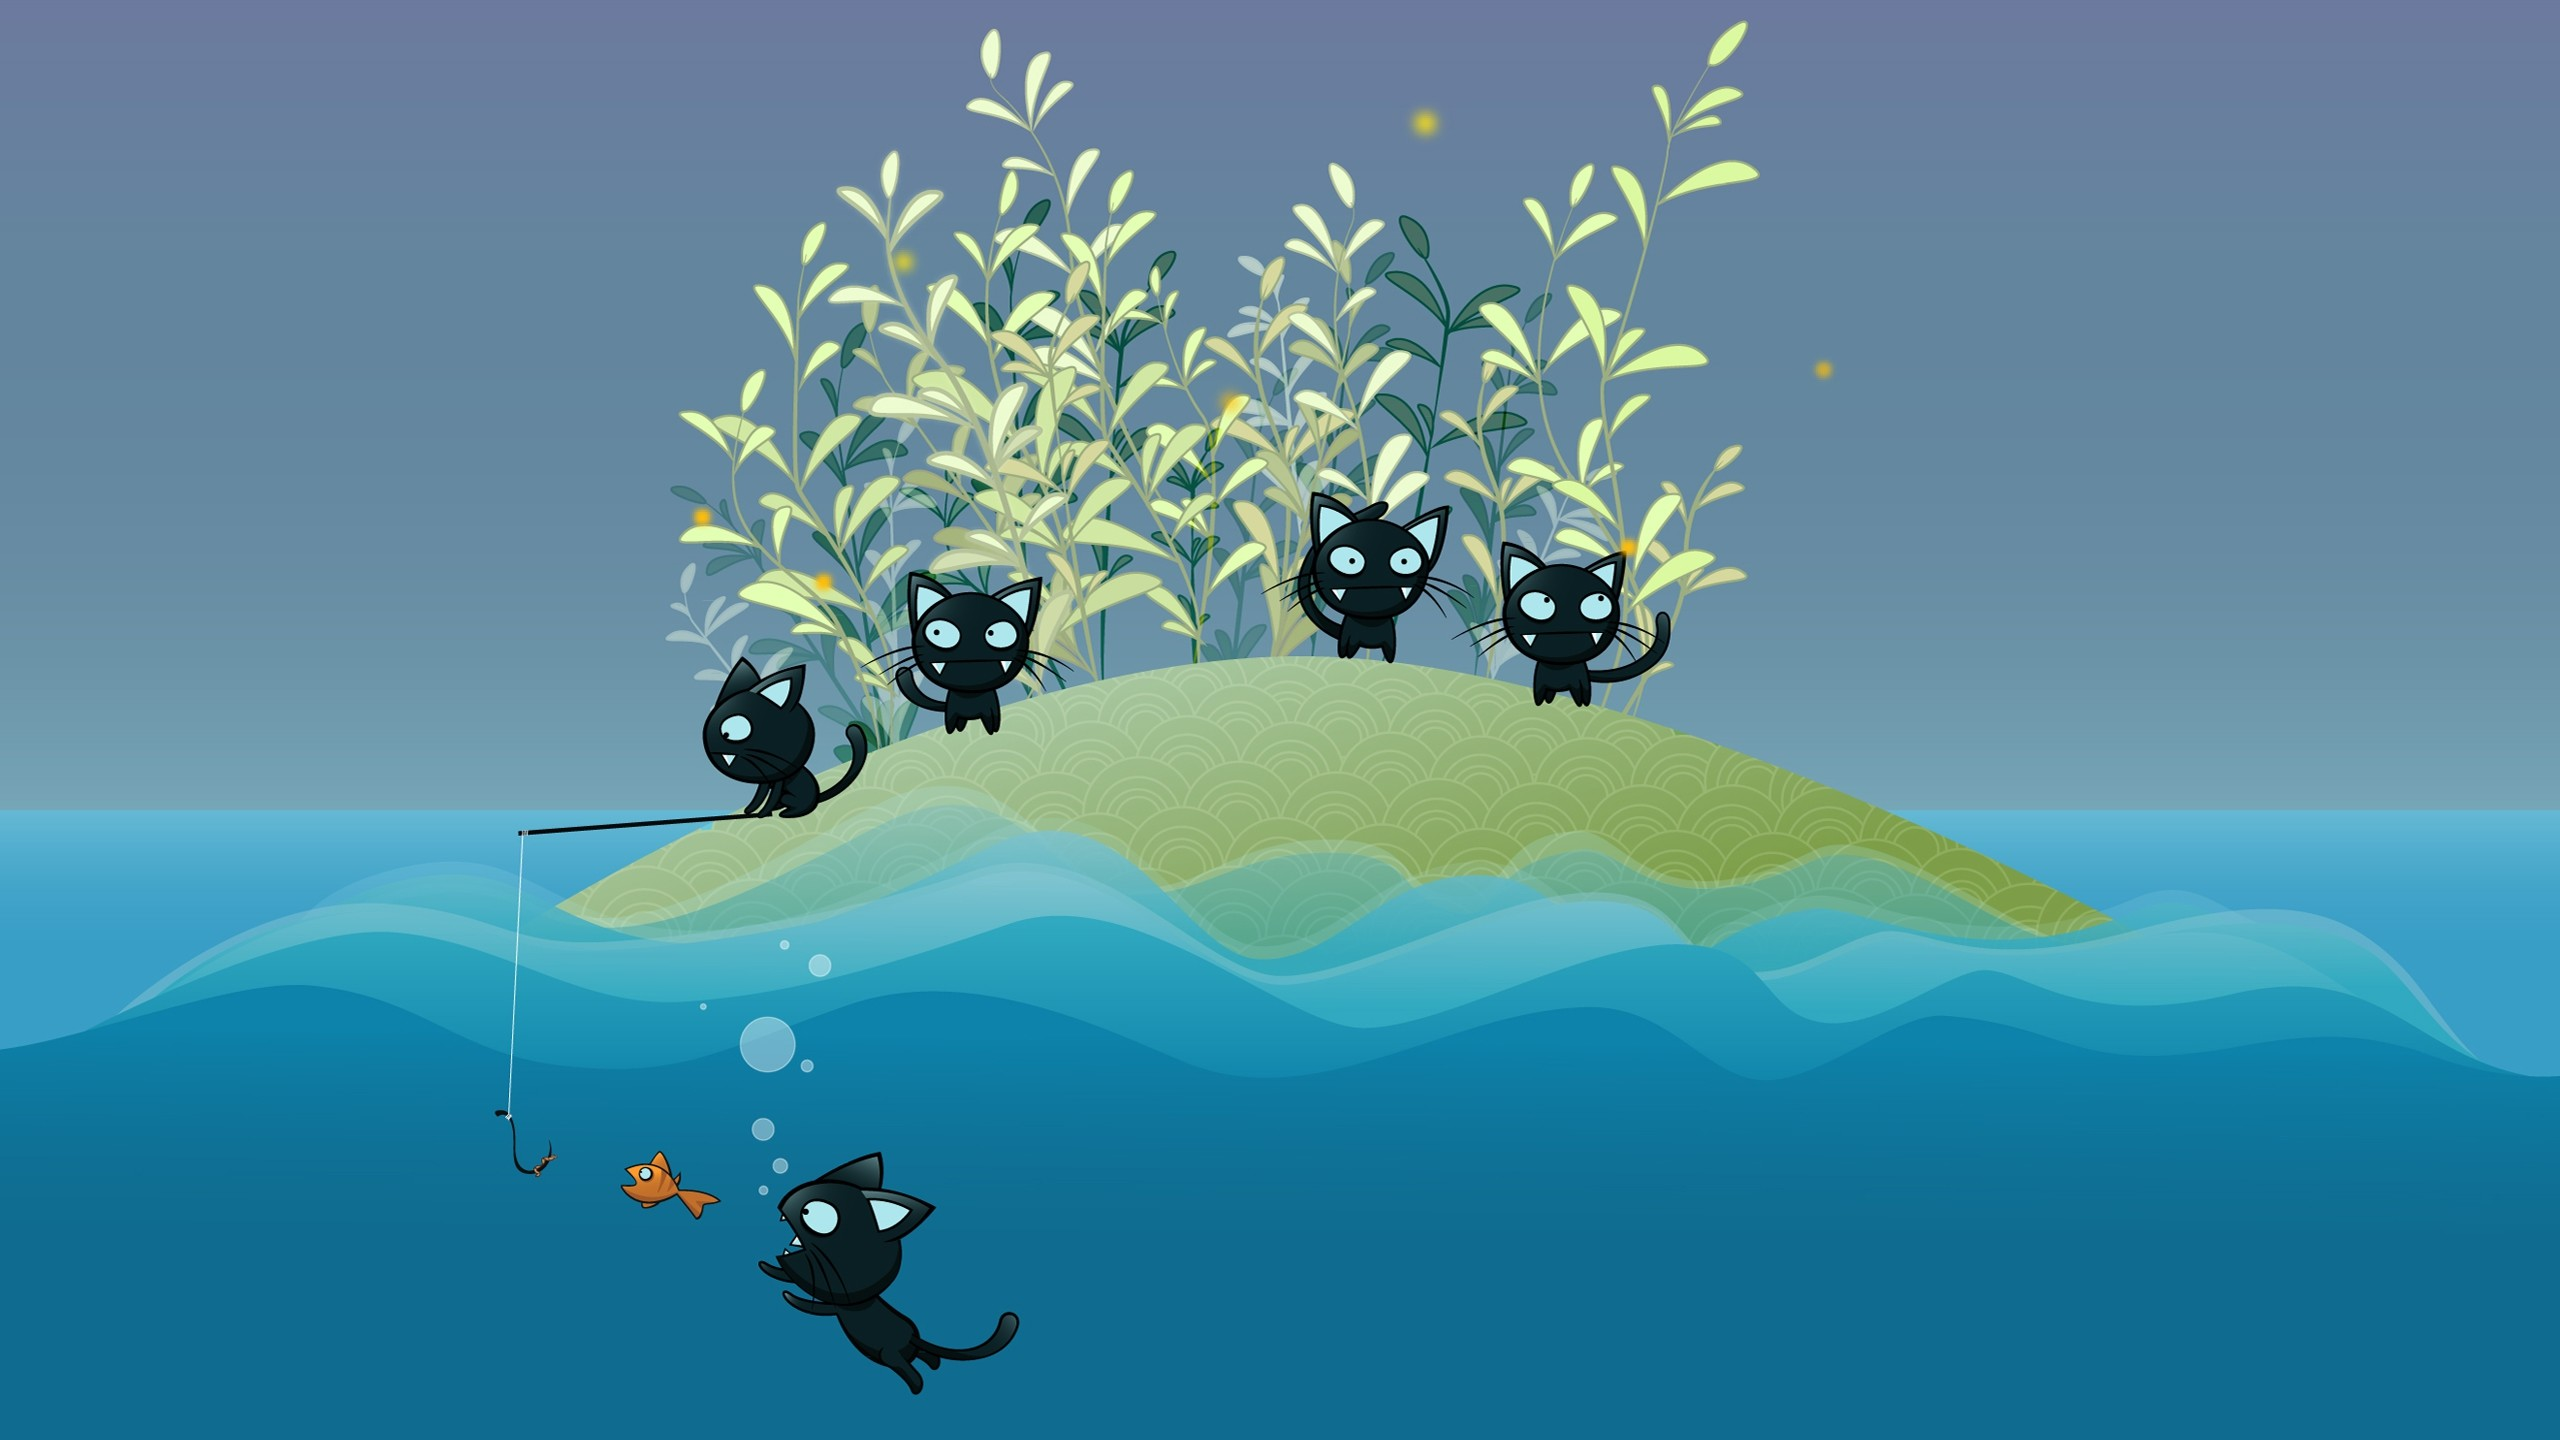 2560x1440 wallpaper.wiki-Cartoon-Cat-Image-HD-PIC-WPE0010020